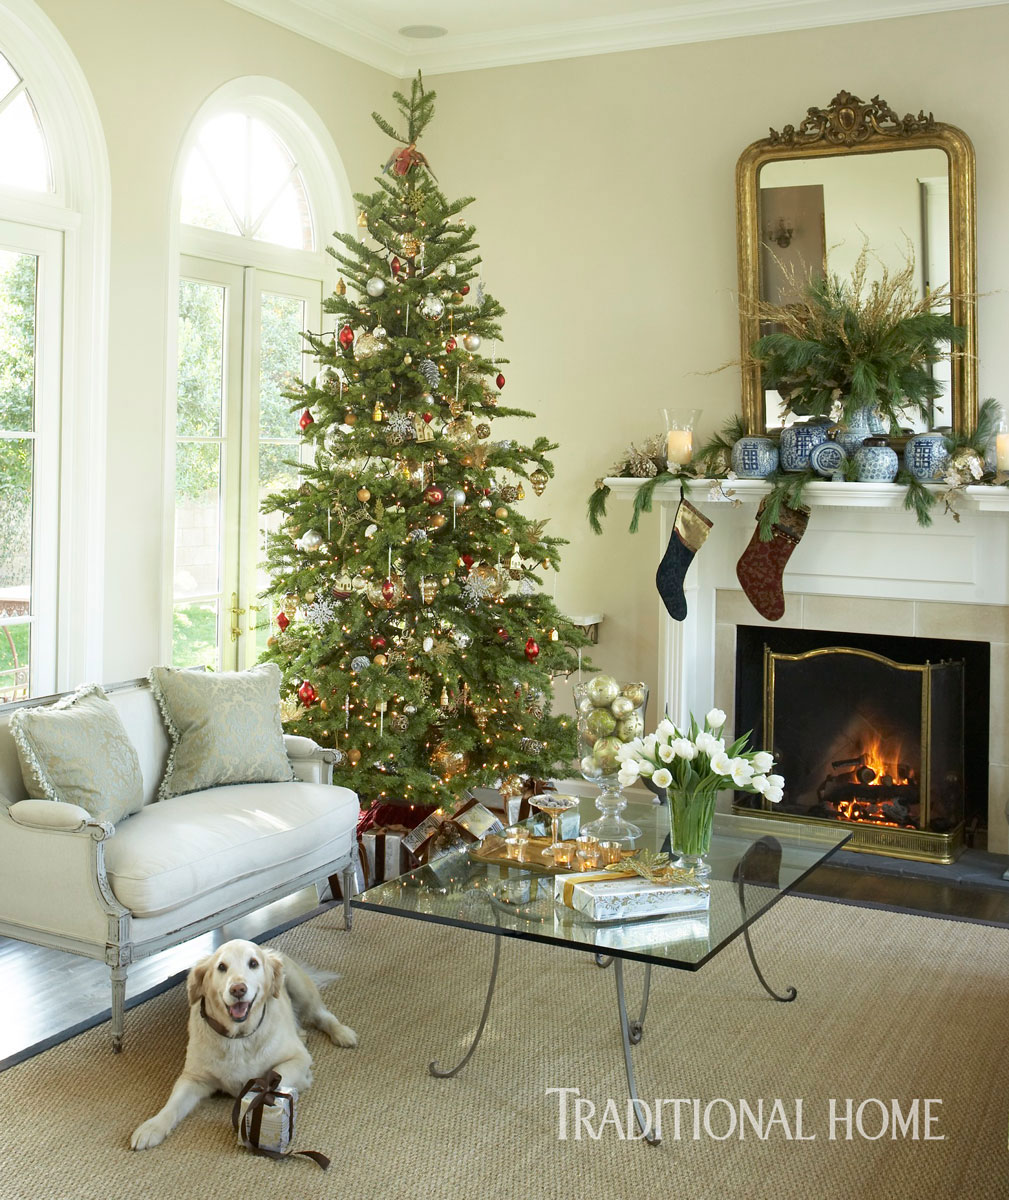 Traditional Home Christmas Decorating: Light-Filled Arizona Home Decked For The Holidays